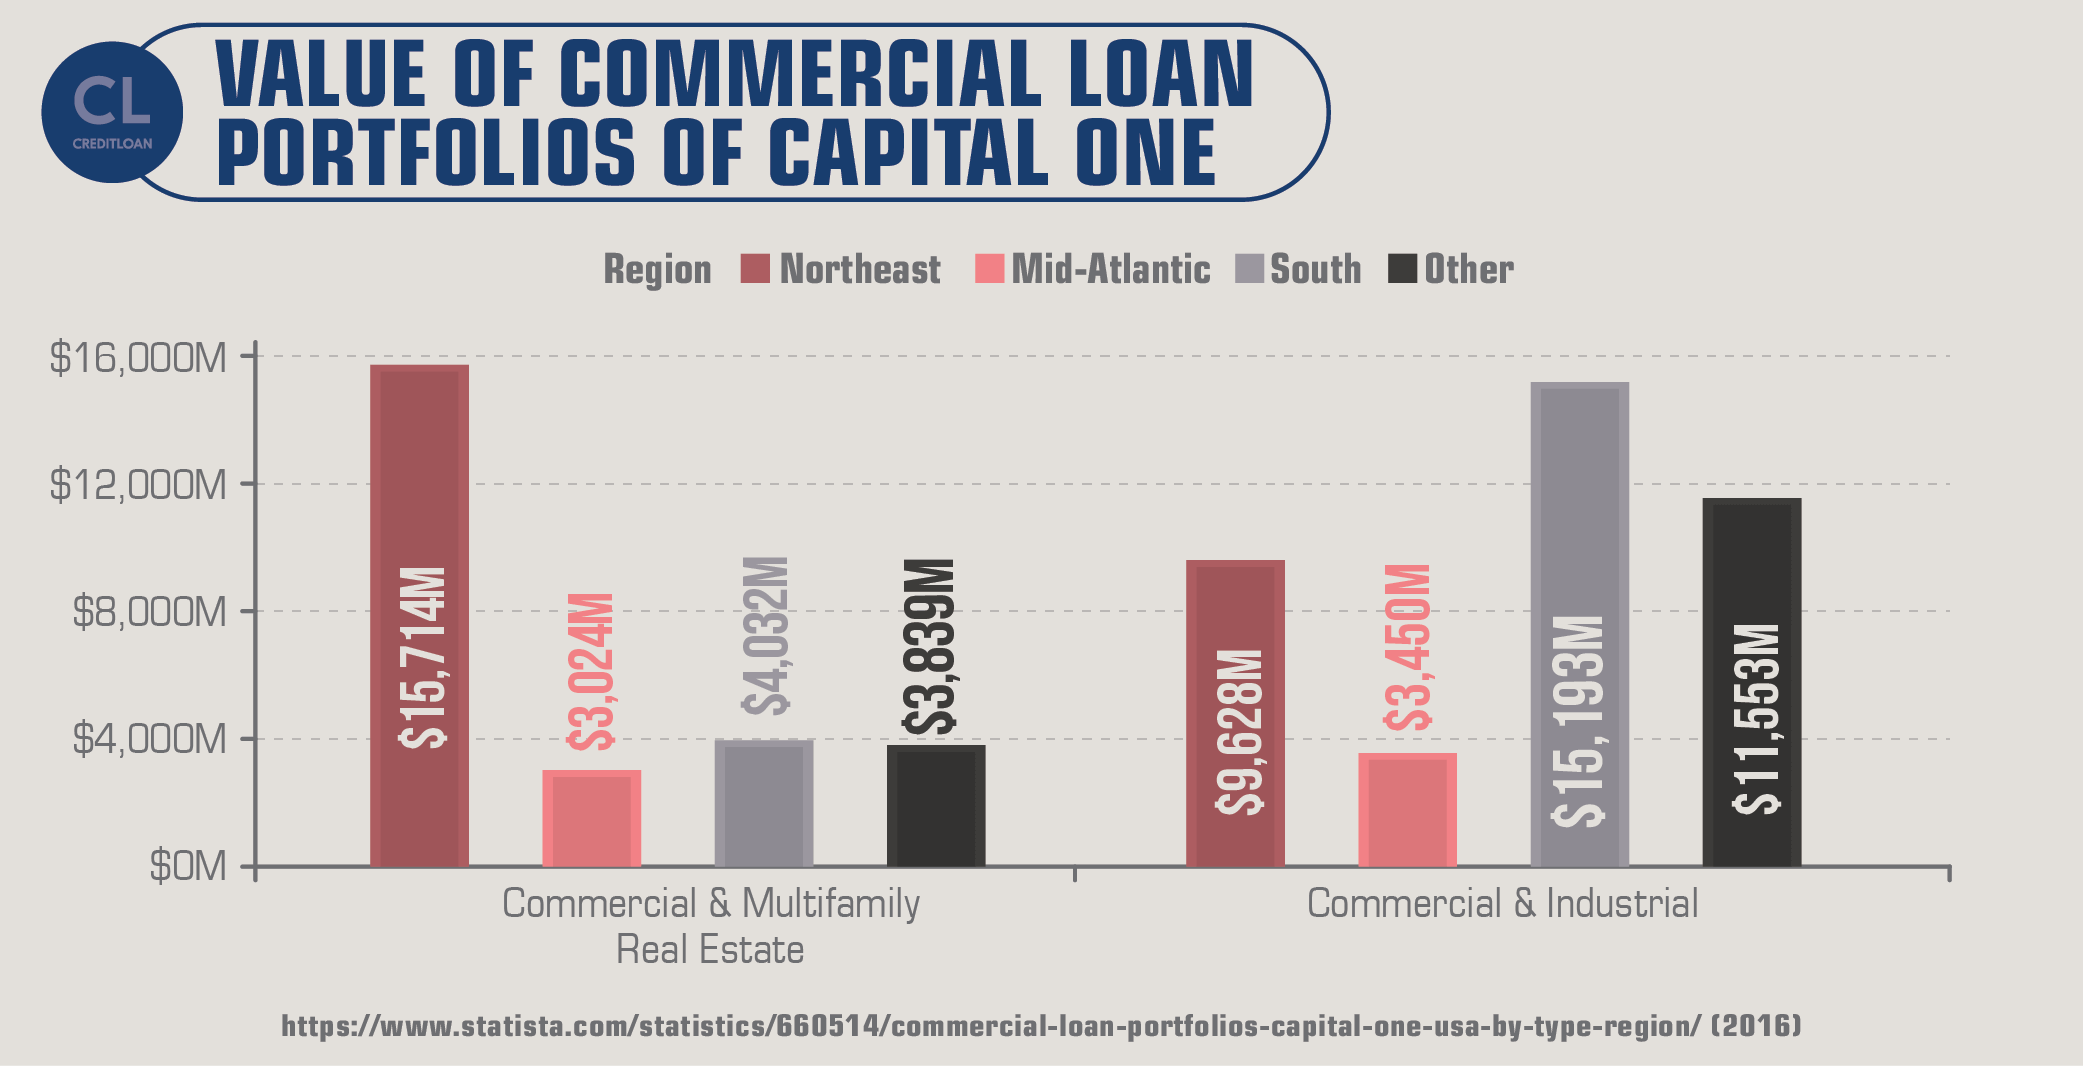 Value of Commercial Loan Portfolios of Capital One